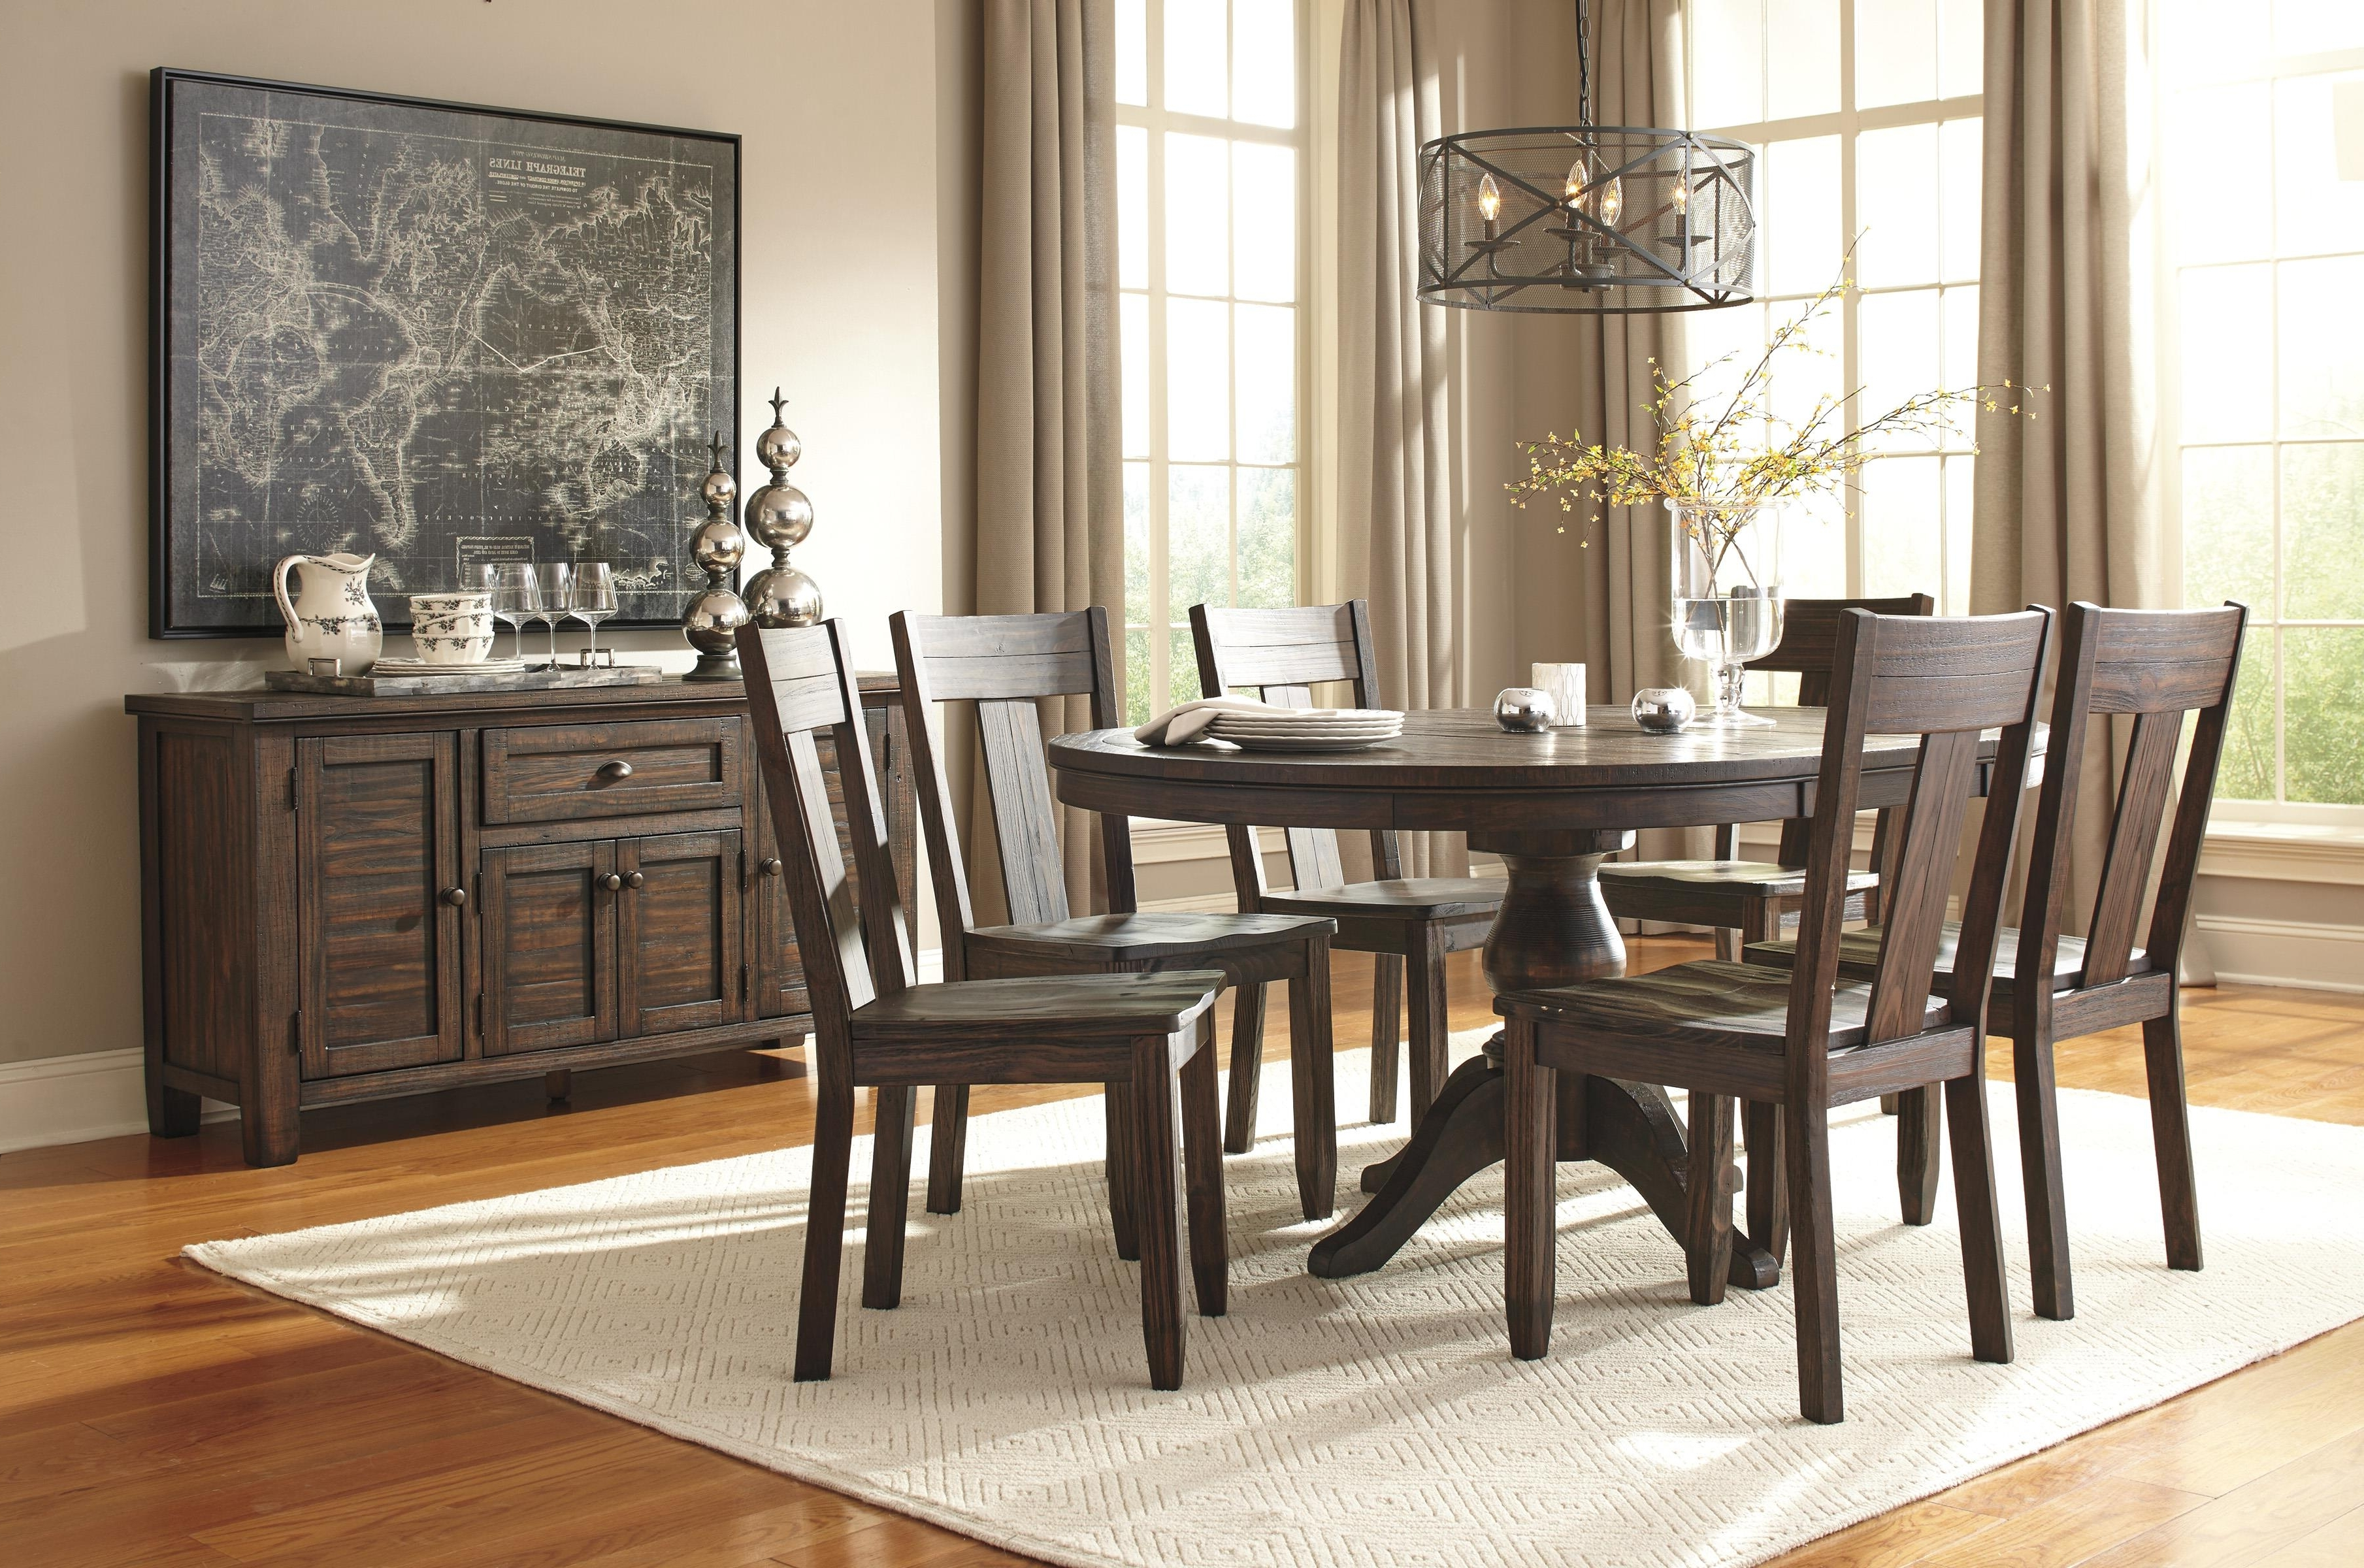 7 Piece Oval Dining Table Set With Wood Seat Side Chairs Inside Famous Craftsman 7 Piece Rectangle Extension Dining Sets With Side Chairs (Gallery 8 of 25)